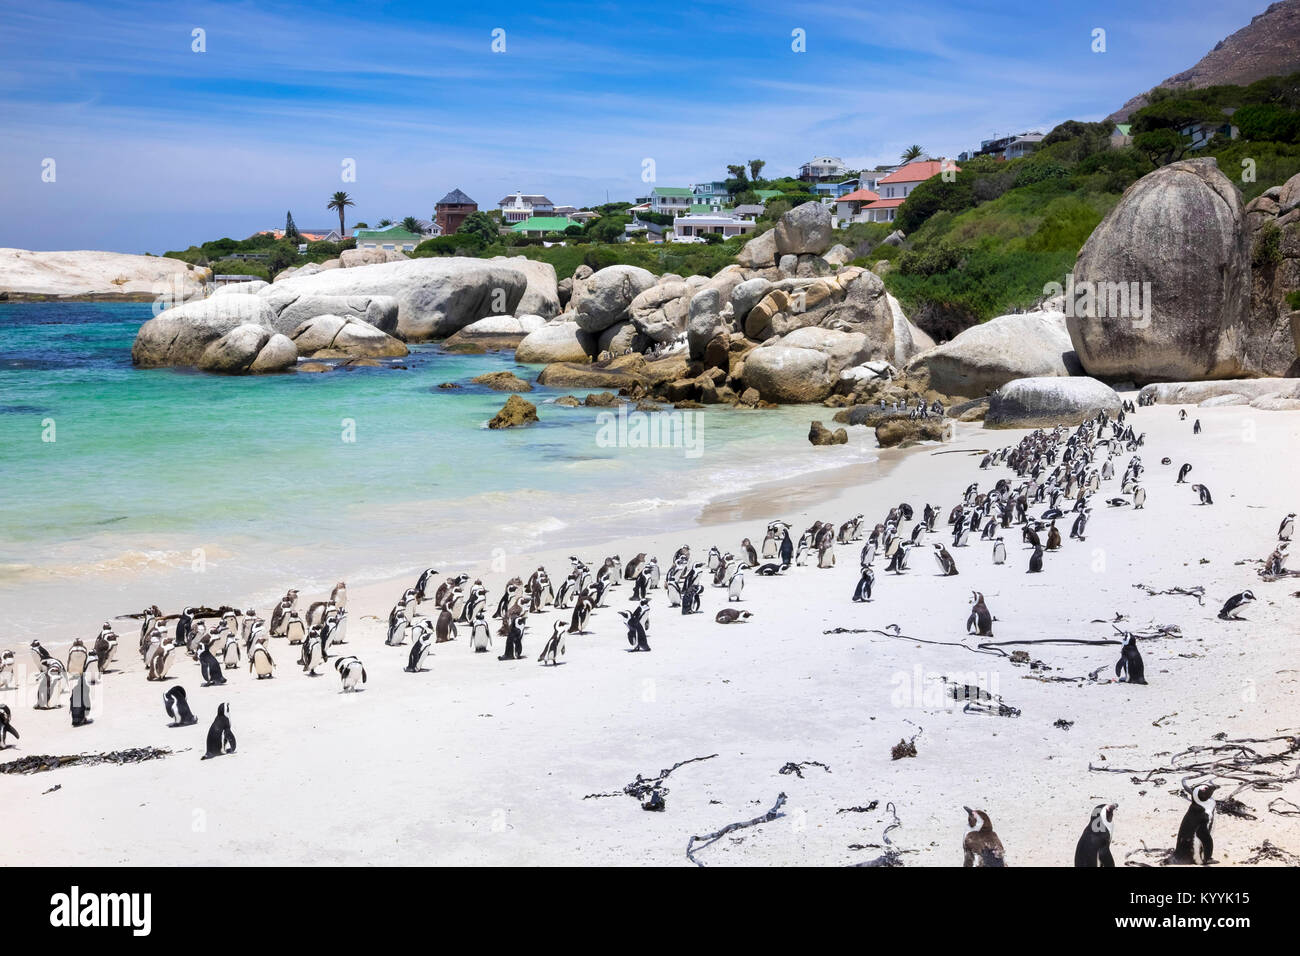 Boulders Bay Penguin Colony of African Jackass penguins at Boulders Beach, Cape Province, South Africa - Stock Image